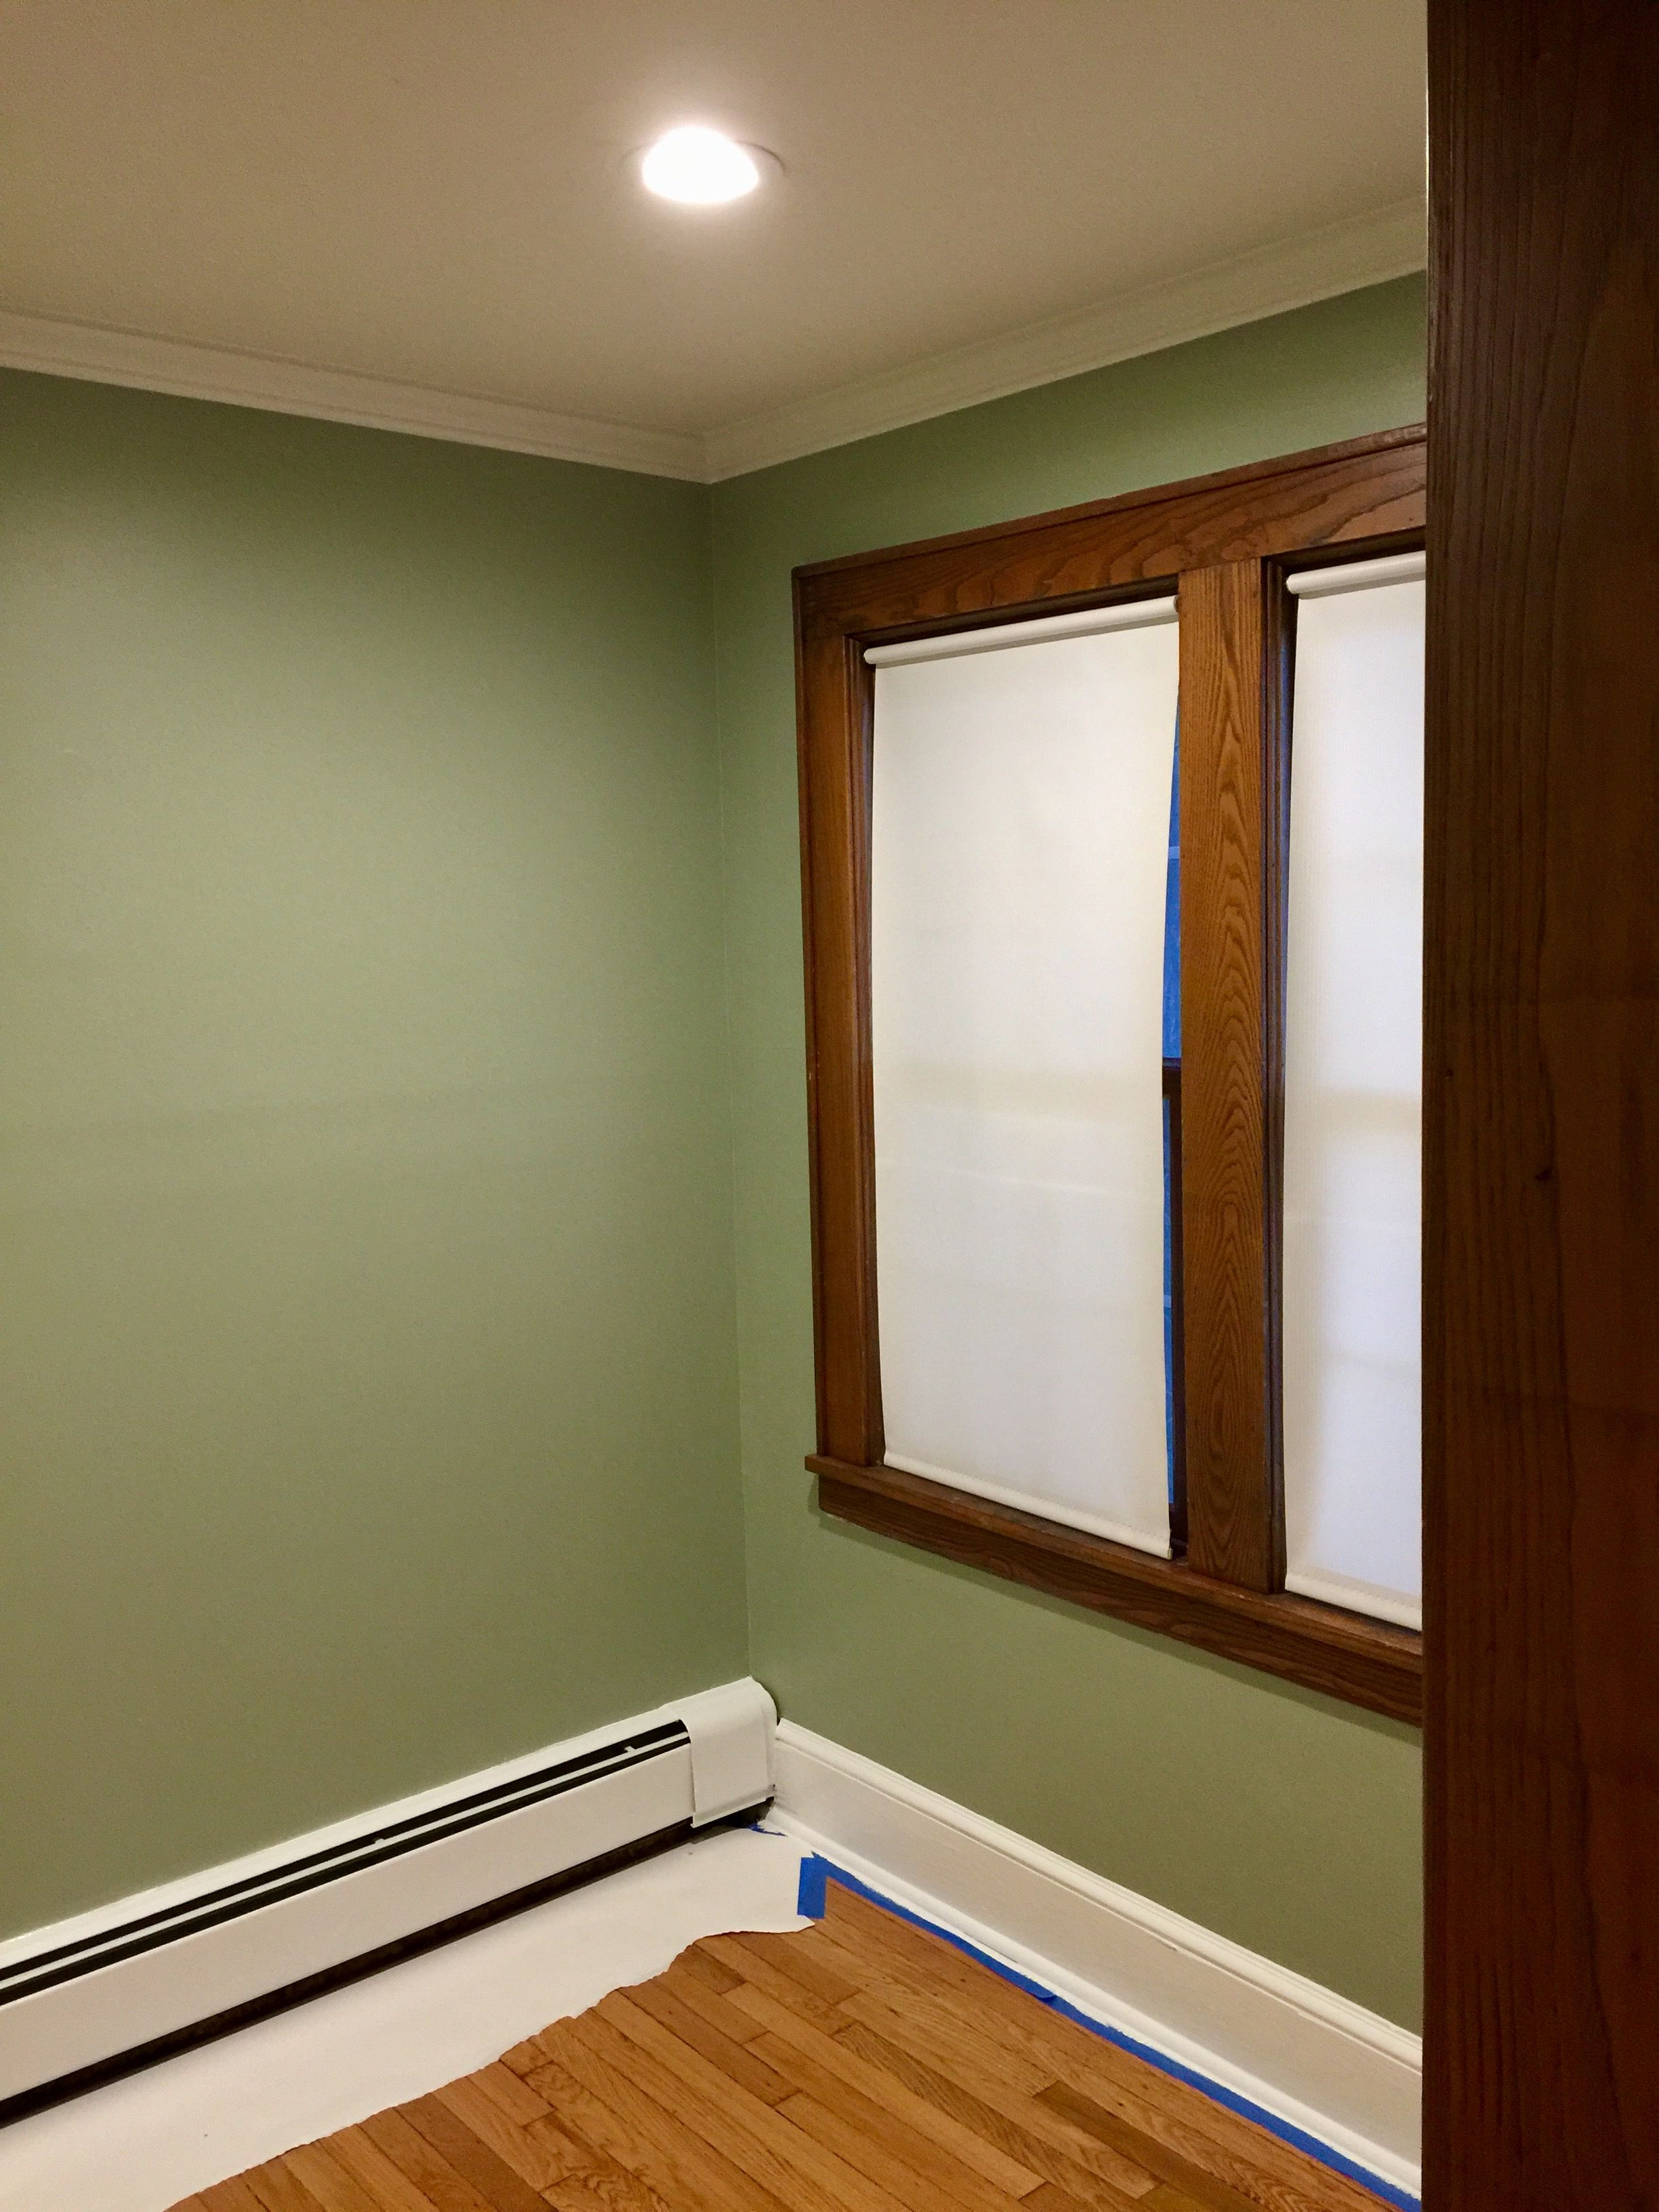 Walls Painted With Sherwin Williams Ovation Clary Sage